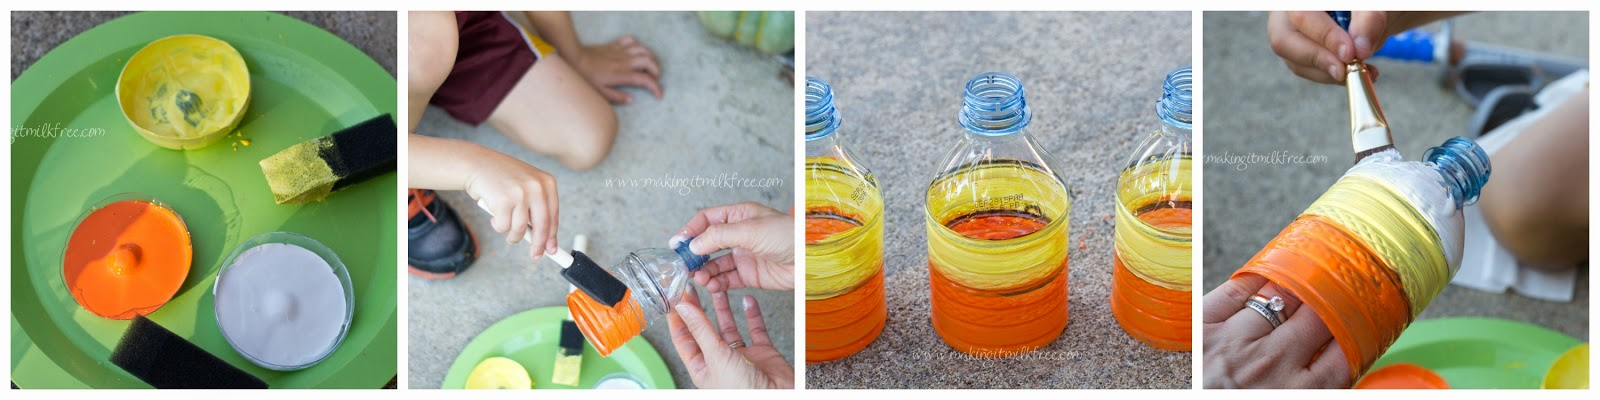 #halloween #diy #dasaniwater #painting